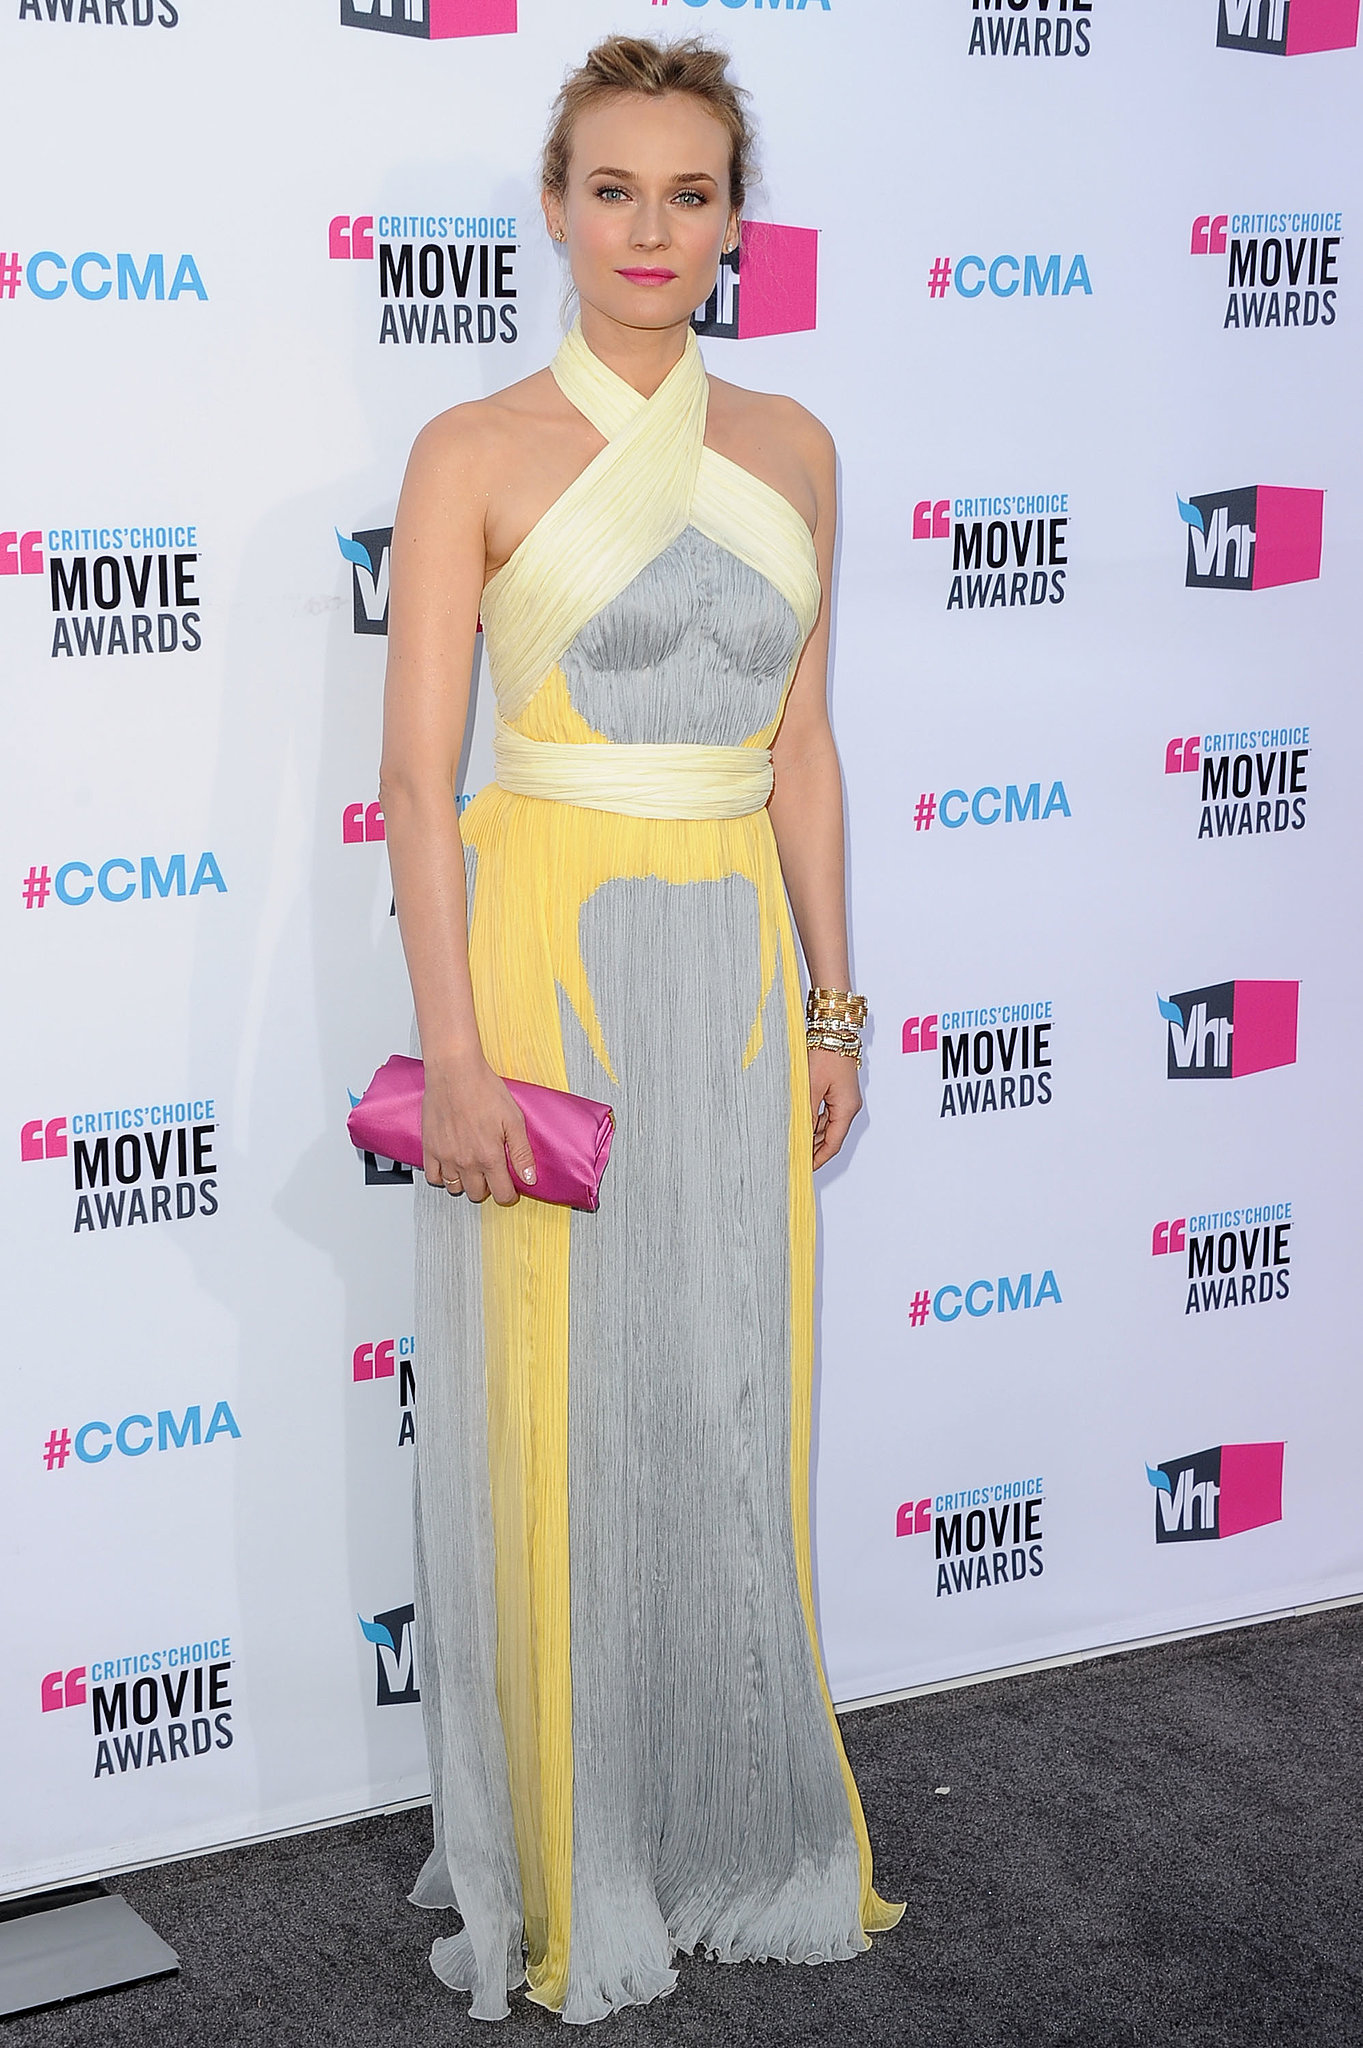 Diane Kruger wowed in a Prada Spring '12 halter gown decked out in a melange of pastel grays, lemon, and canary yellows at the 2012 Critics' Choice Awards. She contrasted these hues with a hot-pink clutch to give her look an extra colorful boost.